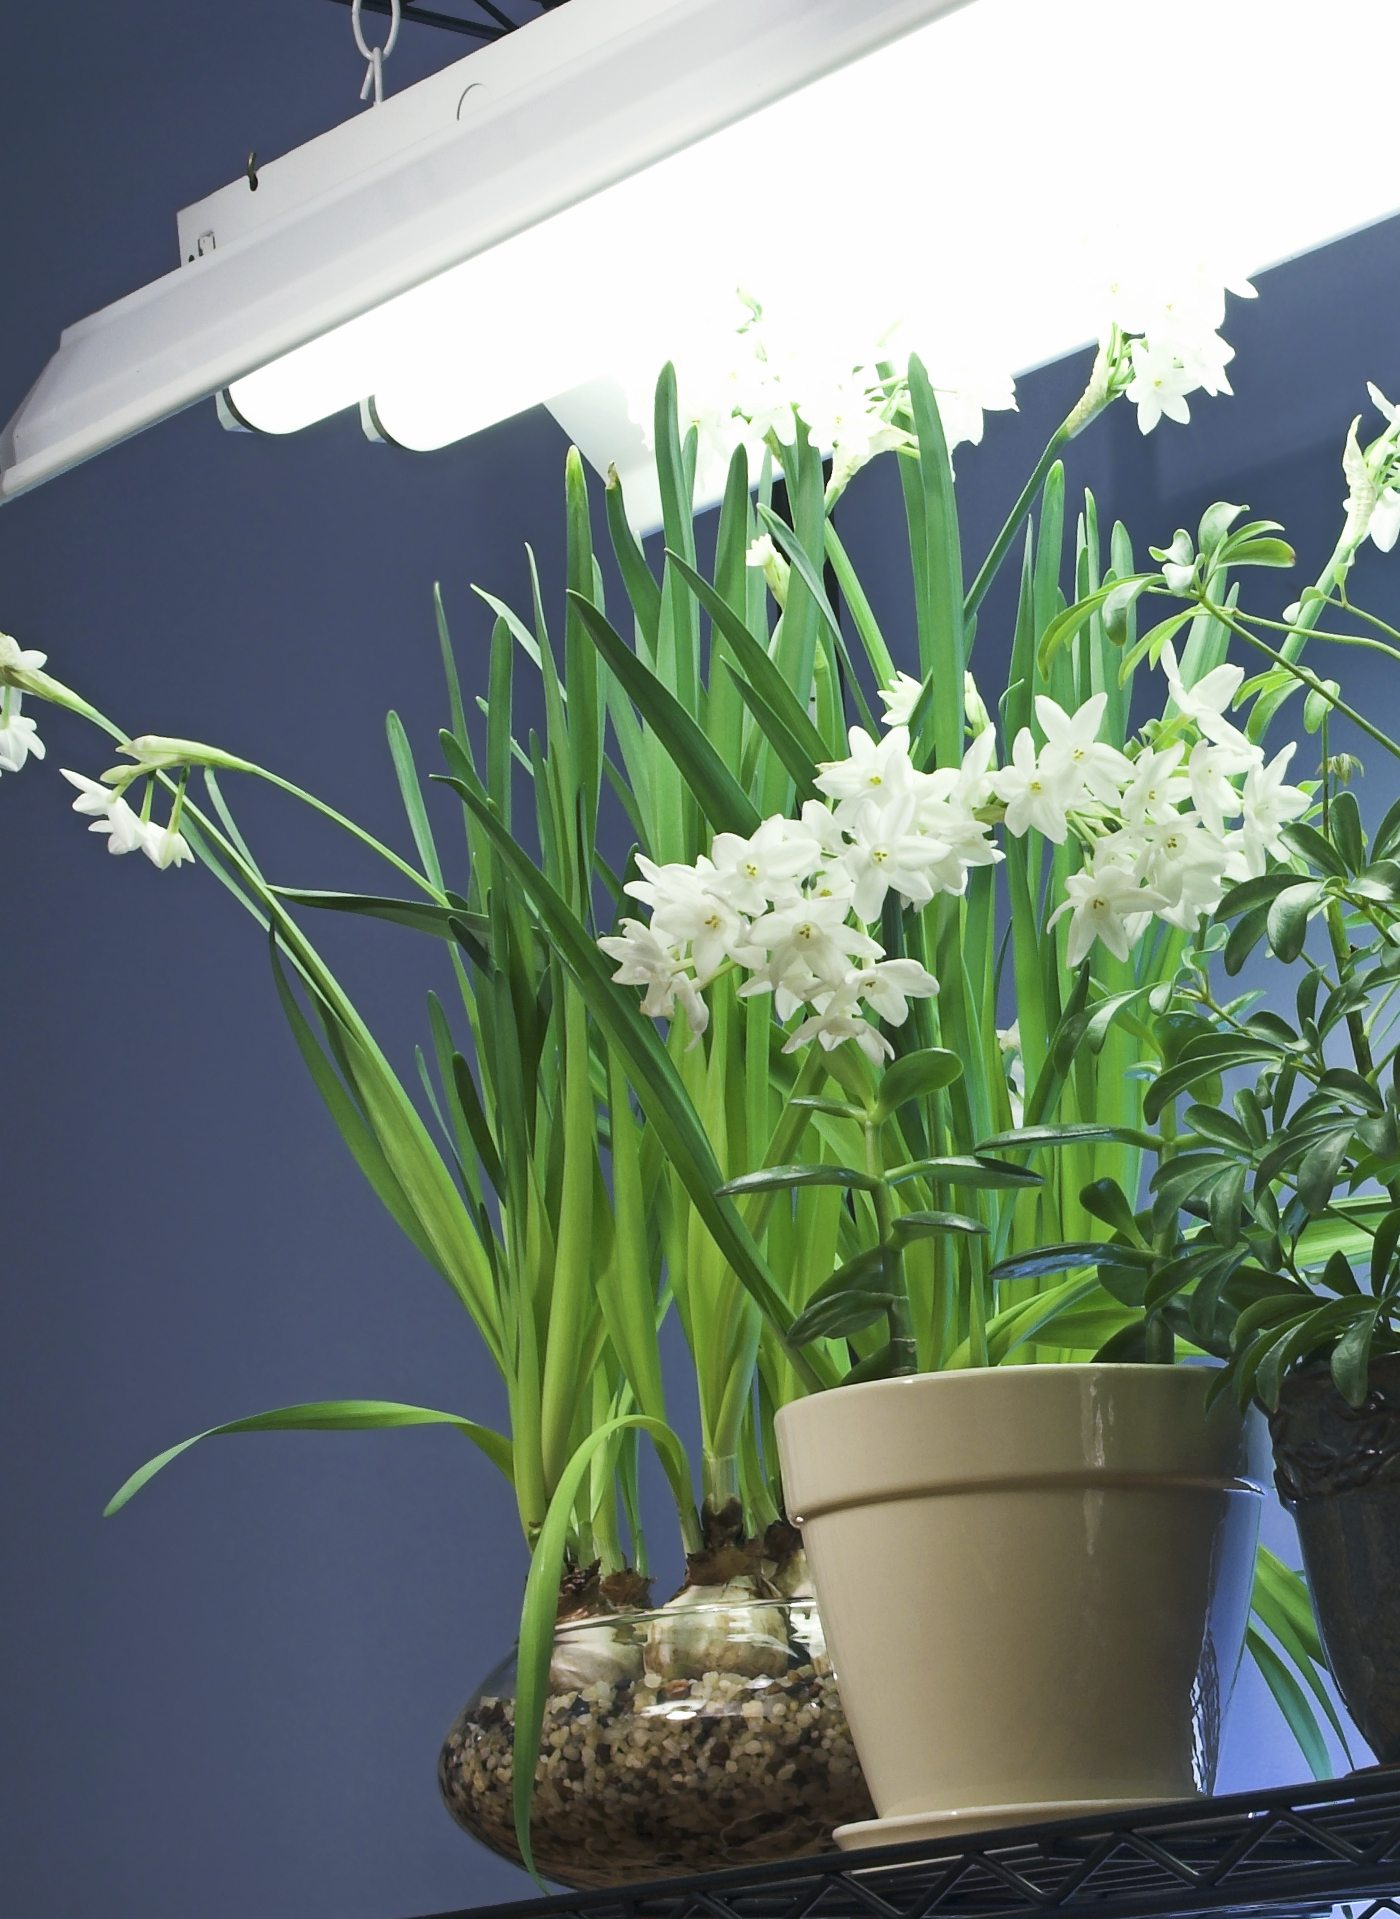 Light Requirements Indoors Fluorescent Lighting For Indoor Gardening